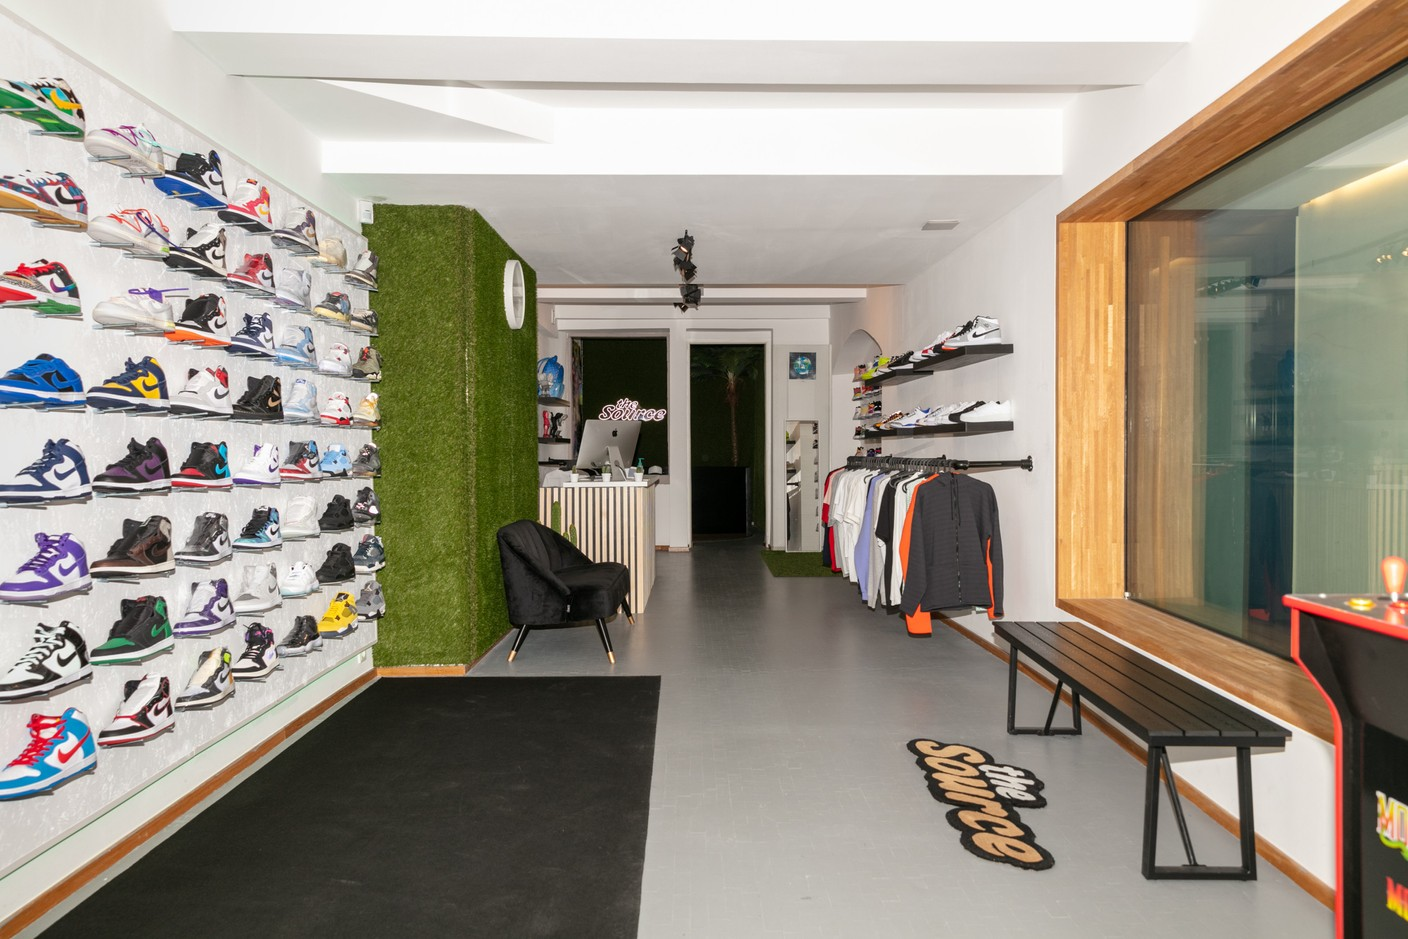 From limited sneakers to exclusive clothing, The Source sells the most sought-after products for young people. (Photo: Romain Gamba/Maison Moderne)